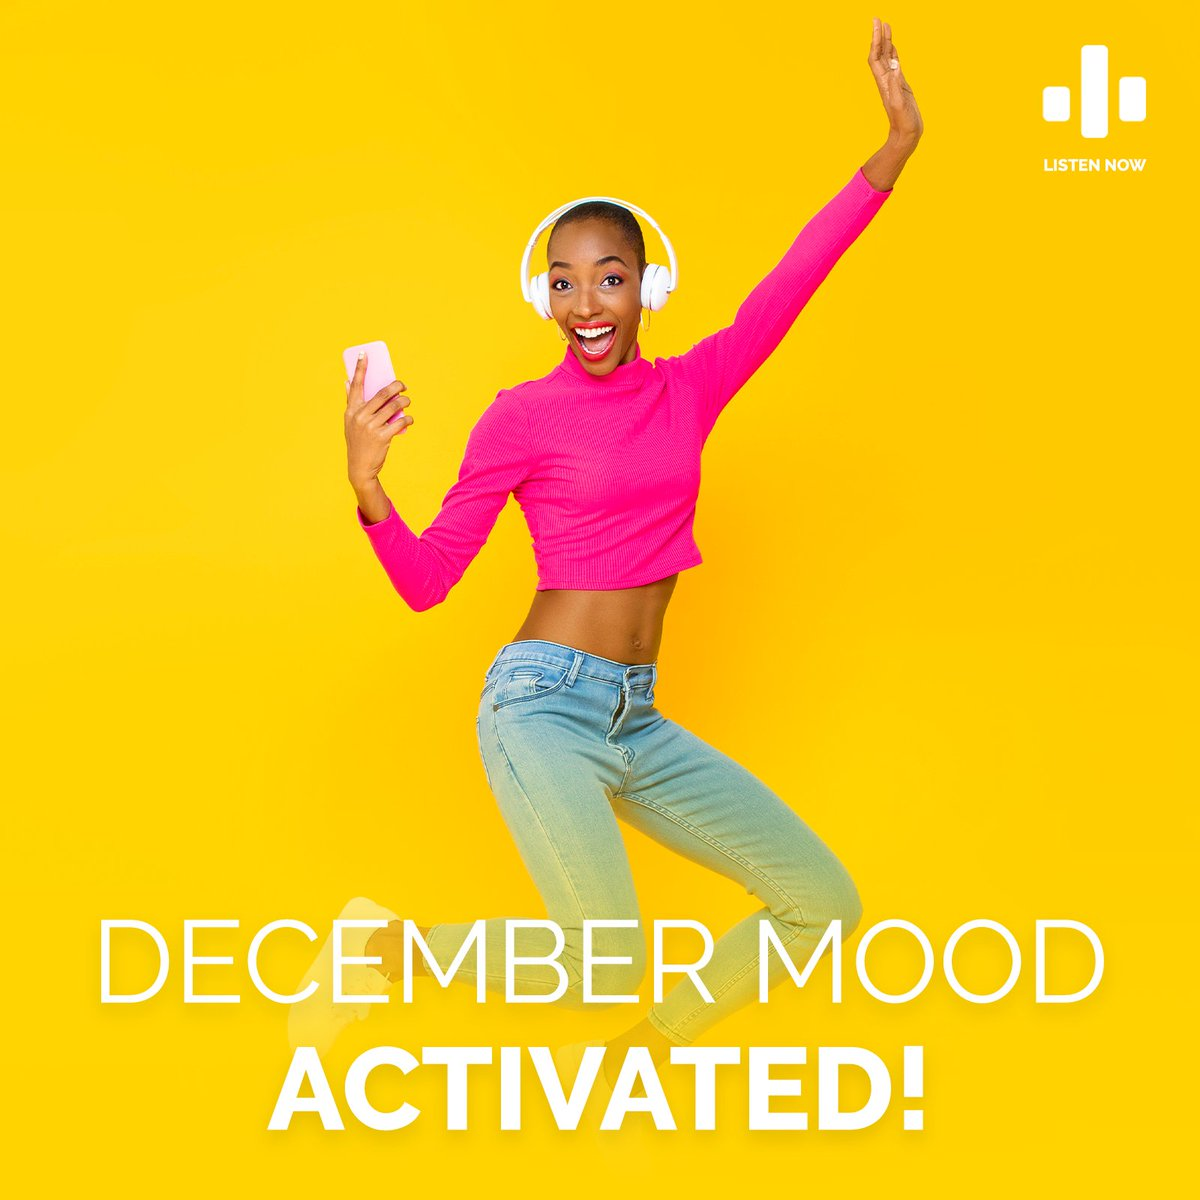 Hear that? Its the #FestiveVibes knocking on your door! Lift your festive spirits and activate the December mood with songs like #JohnVuliGate #Elamont #Indlove and more! Ke Decemba boss💥  🎧:  MTN customers currently.   #summervibes @MTNSwaziland